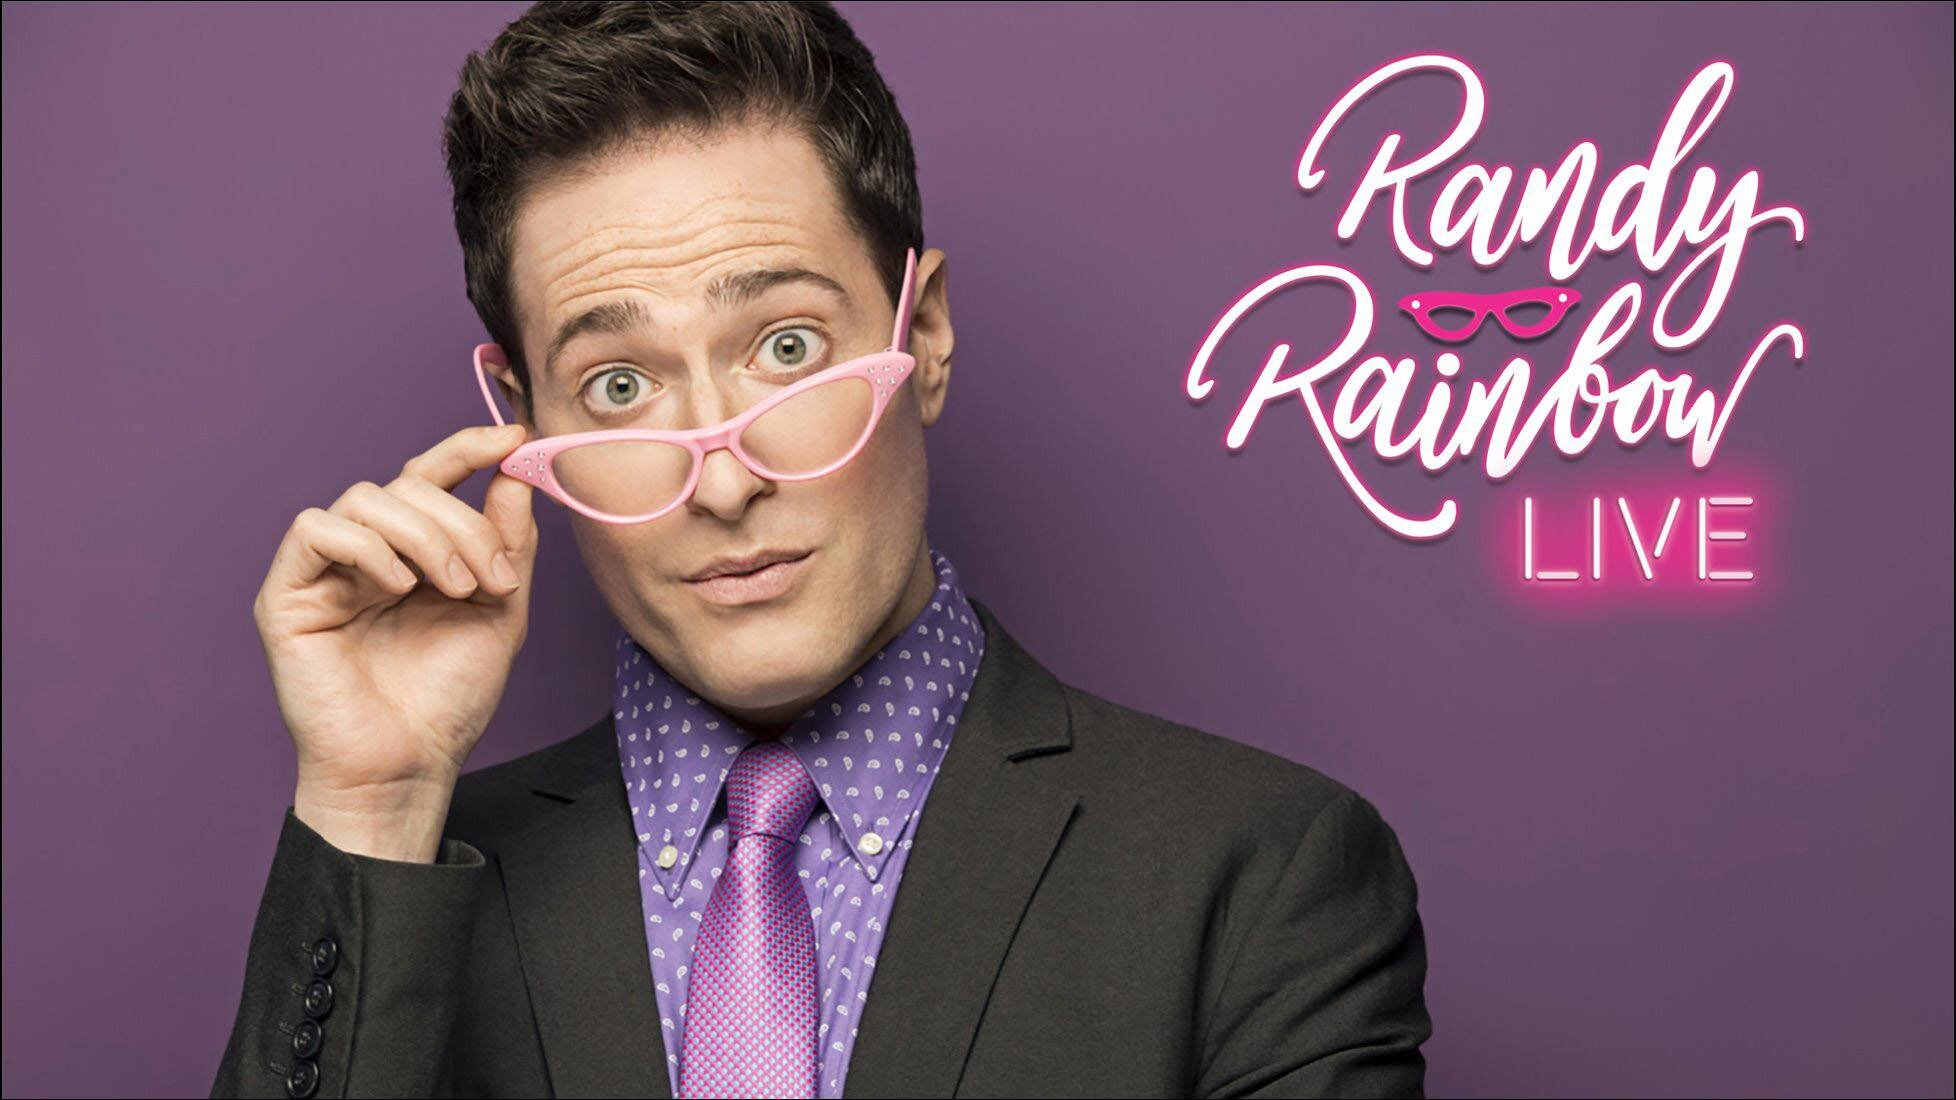 Randy Rainbow Music Without Borders